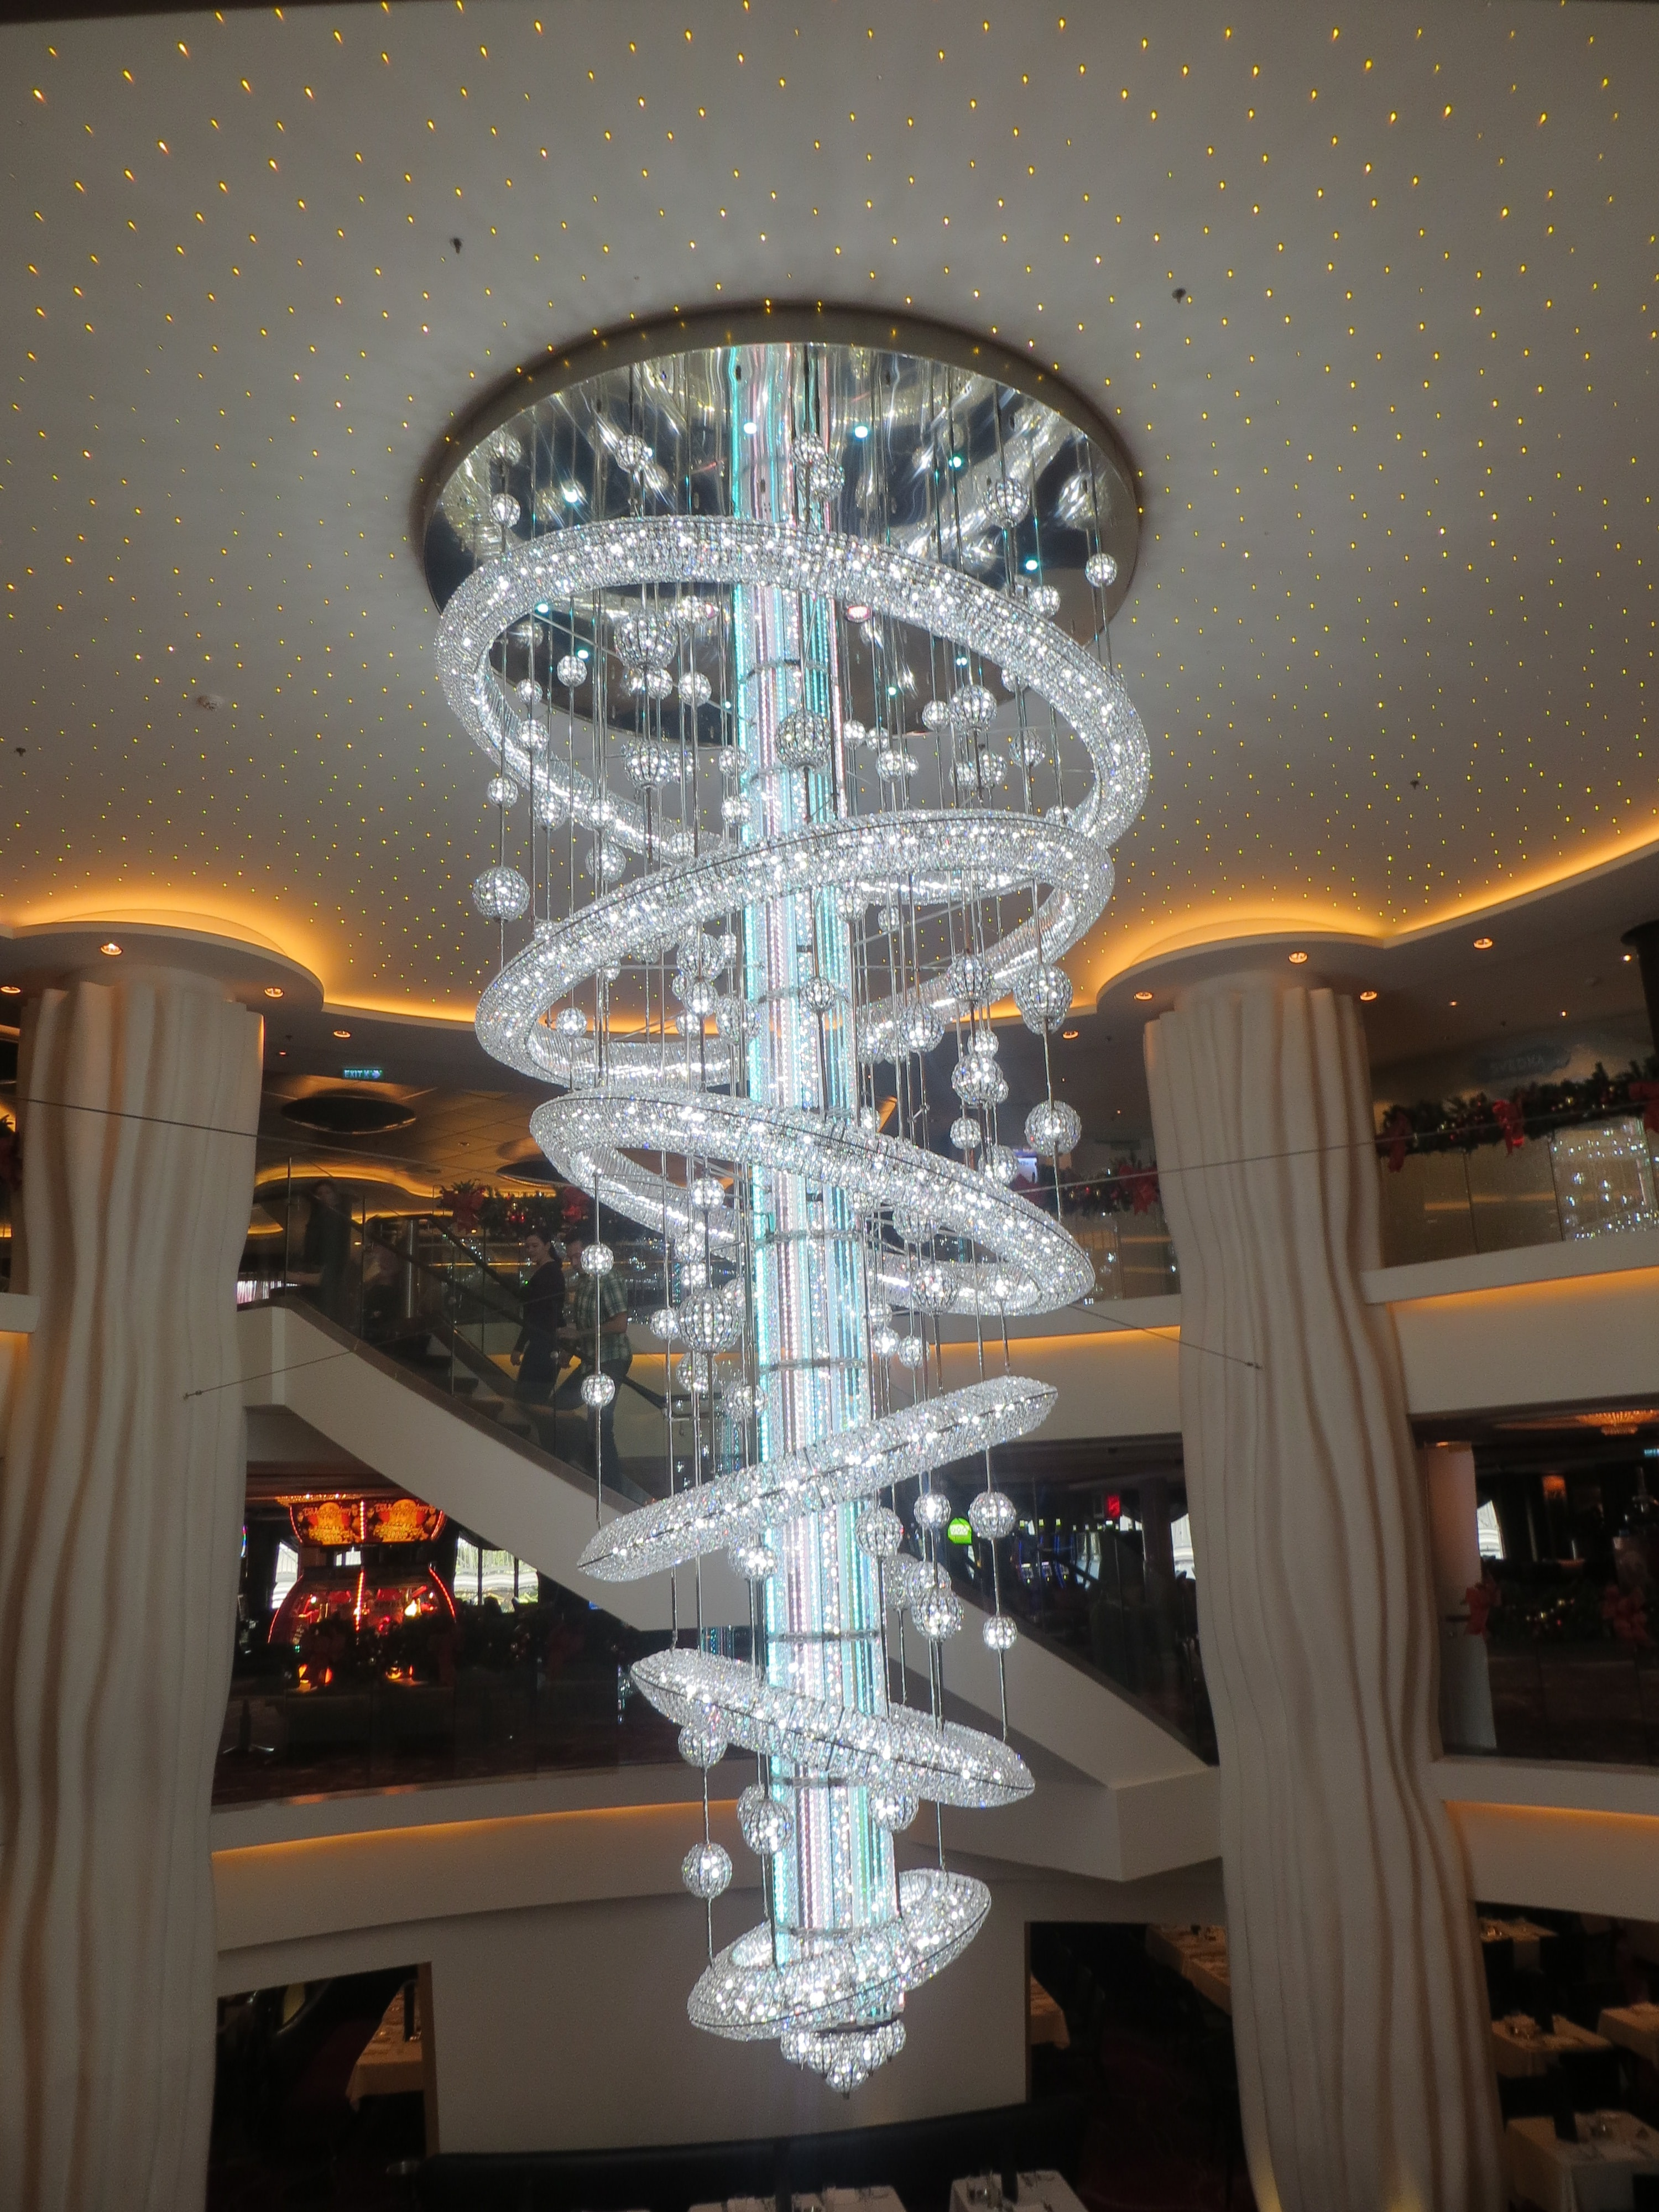 Ncl S Norwegian Epic Cruising Isnt Just For Old People